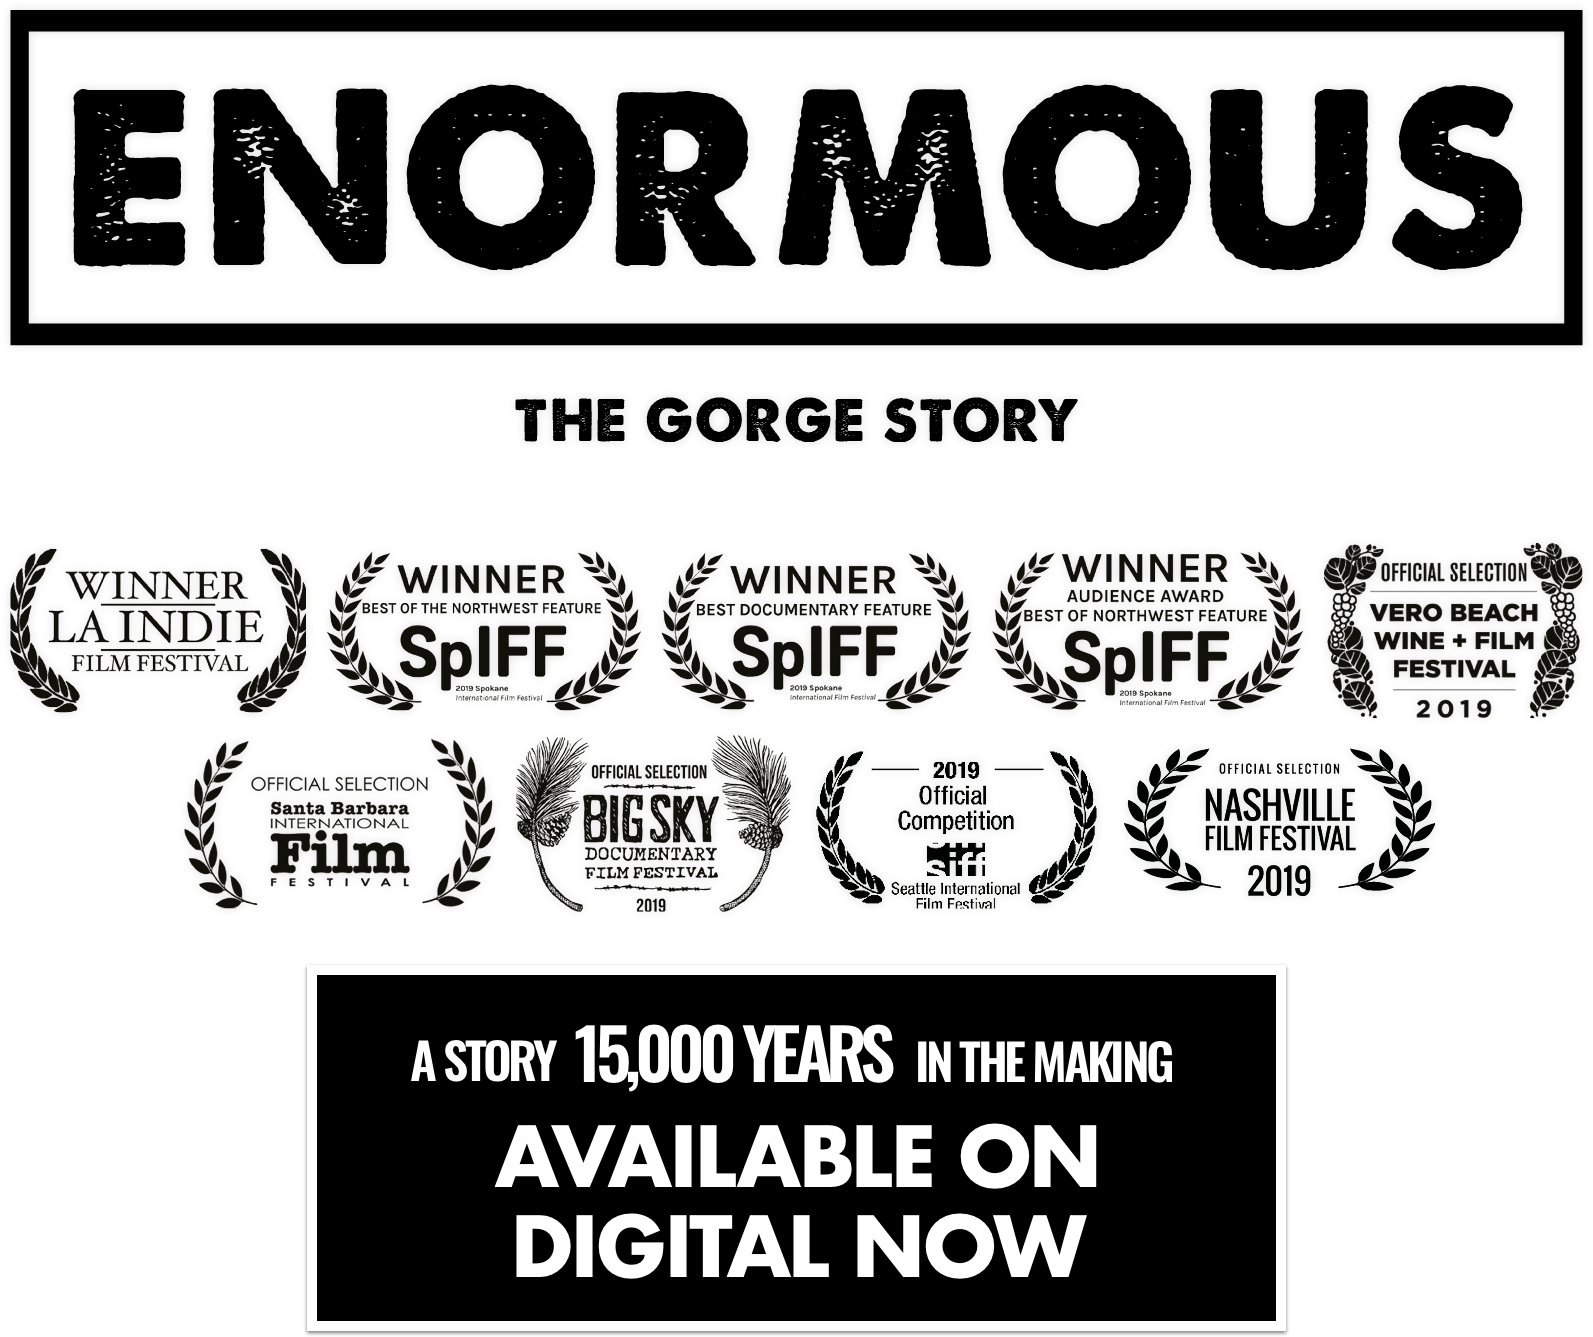 Enormous: The Gorge Story: Synopsis | Trafalgar Releasing